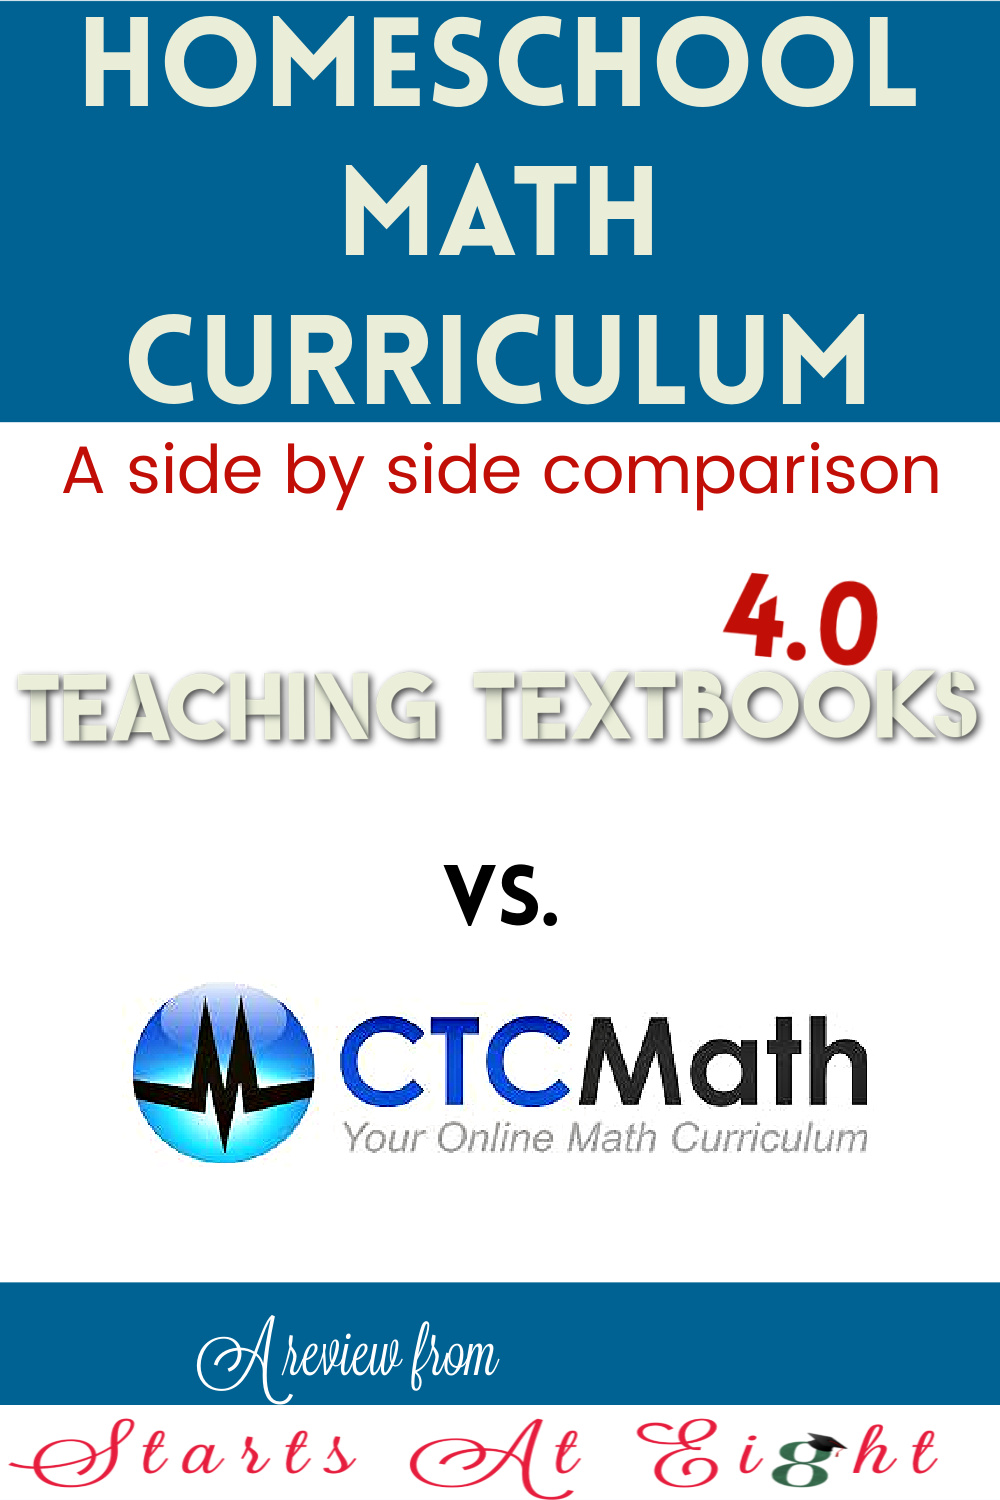 UPDATED to reflect Teaching Textbooks 4.0! Homeschool Math Curriculum: a side by side comparison of Teaching Textbooks 4.0 and CTCMath. A review from Starts At Eight